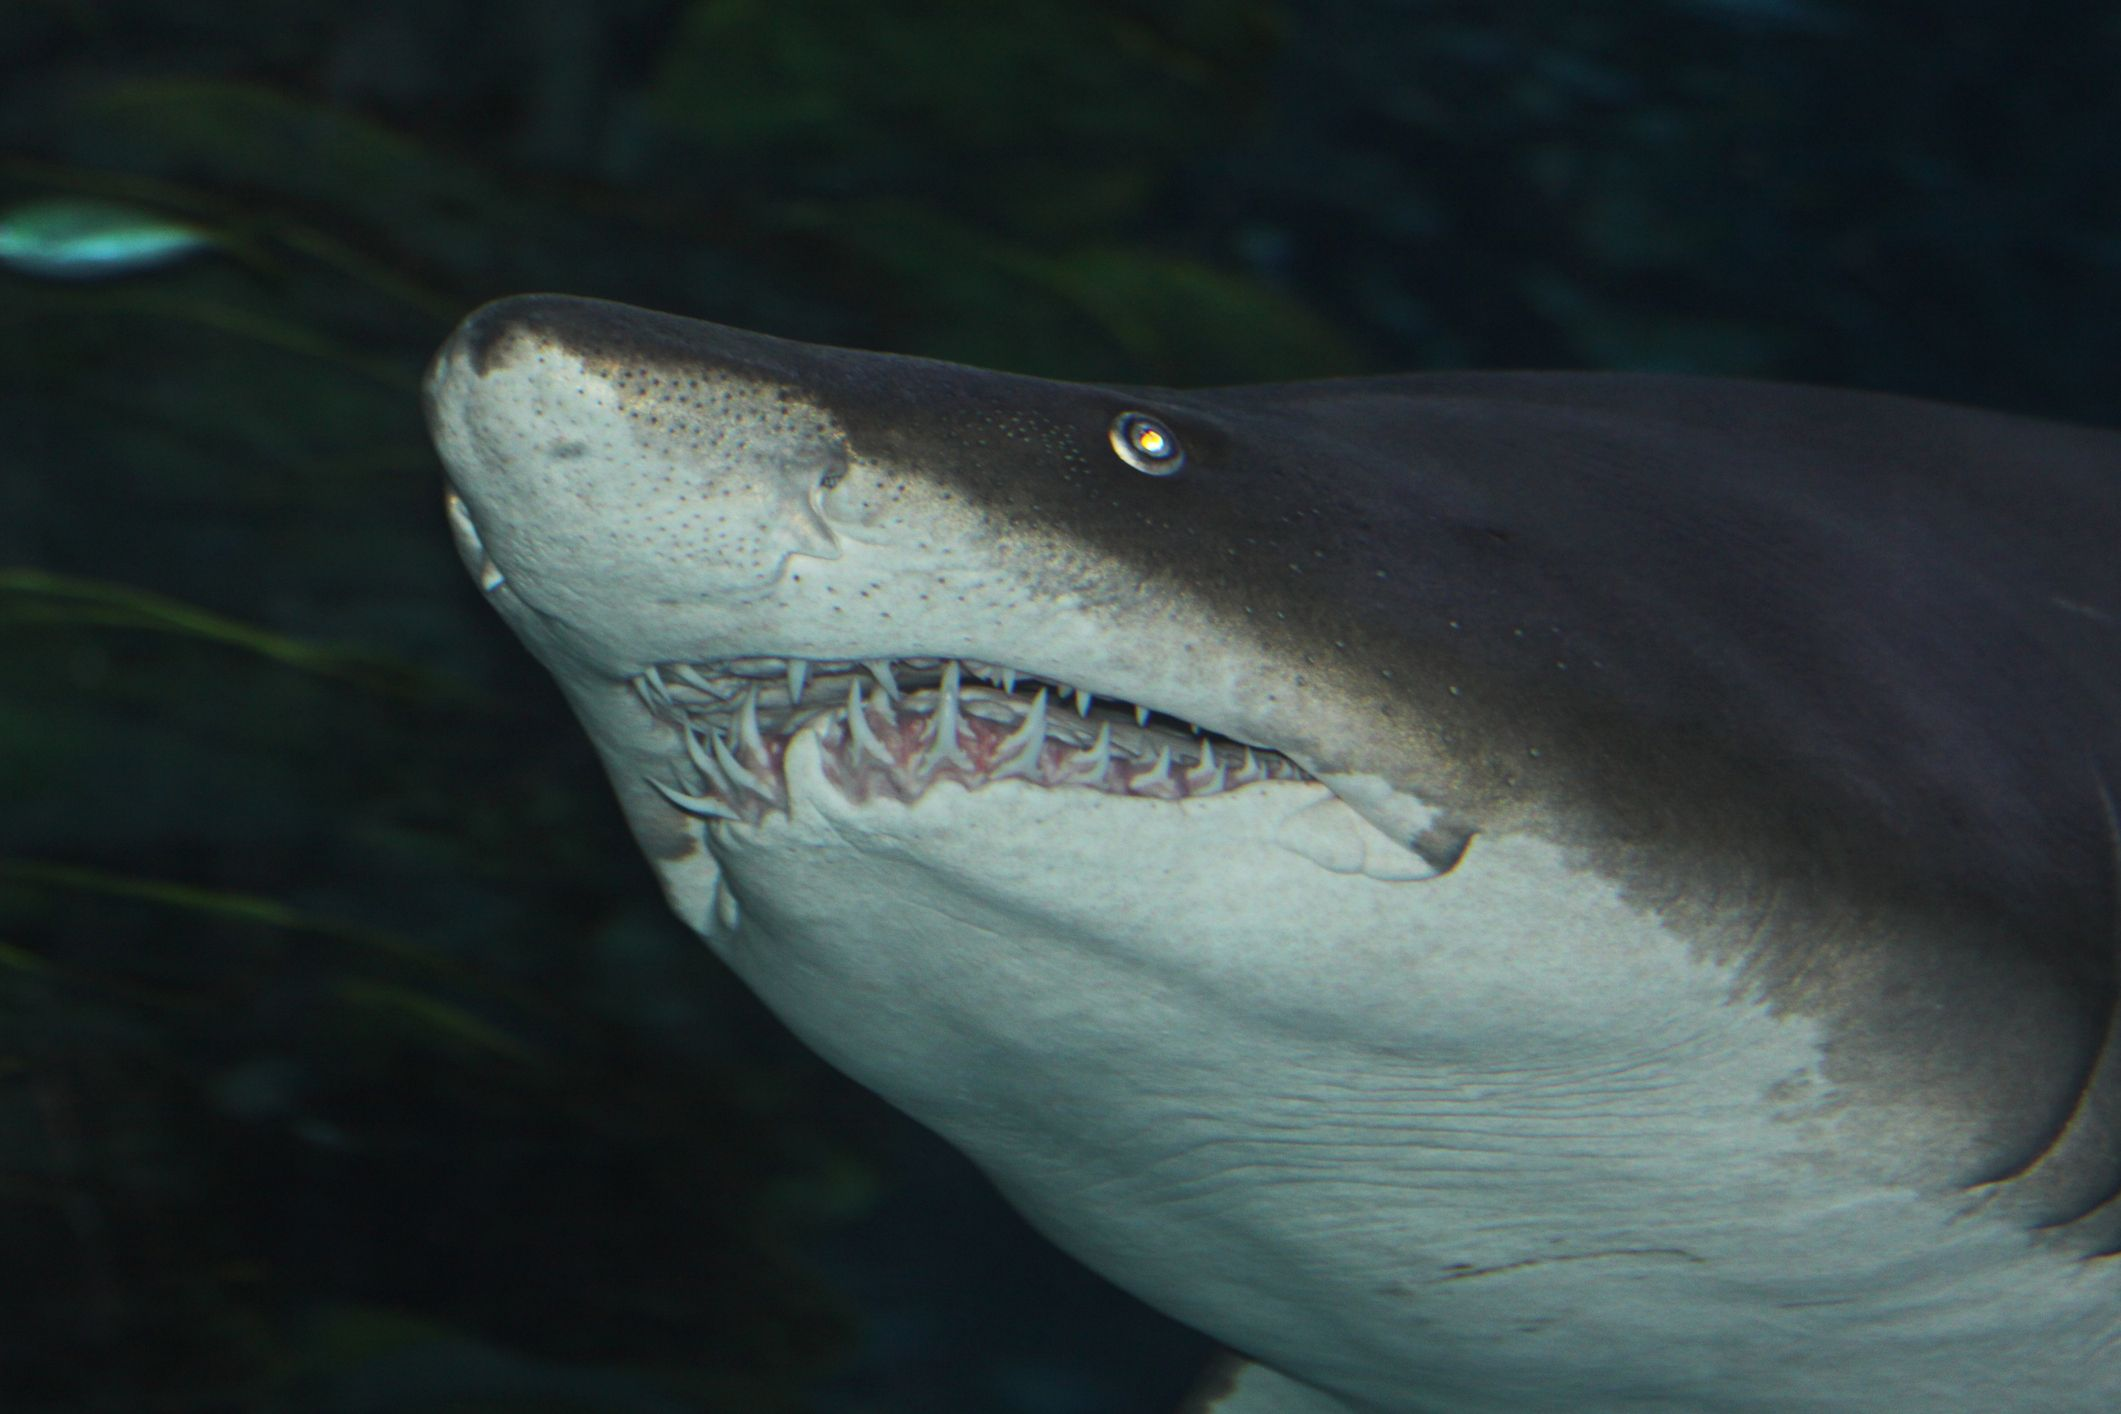 a close-up of sand tiger shark teeth